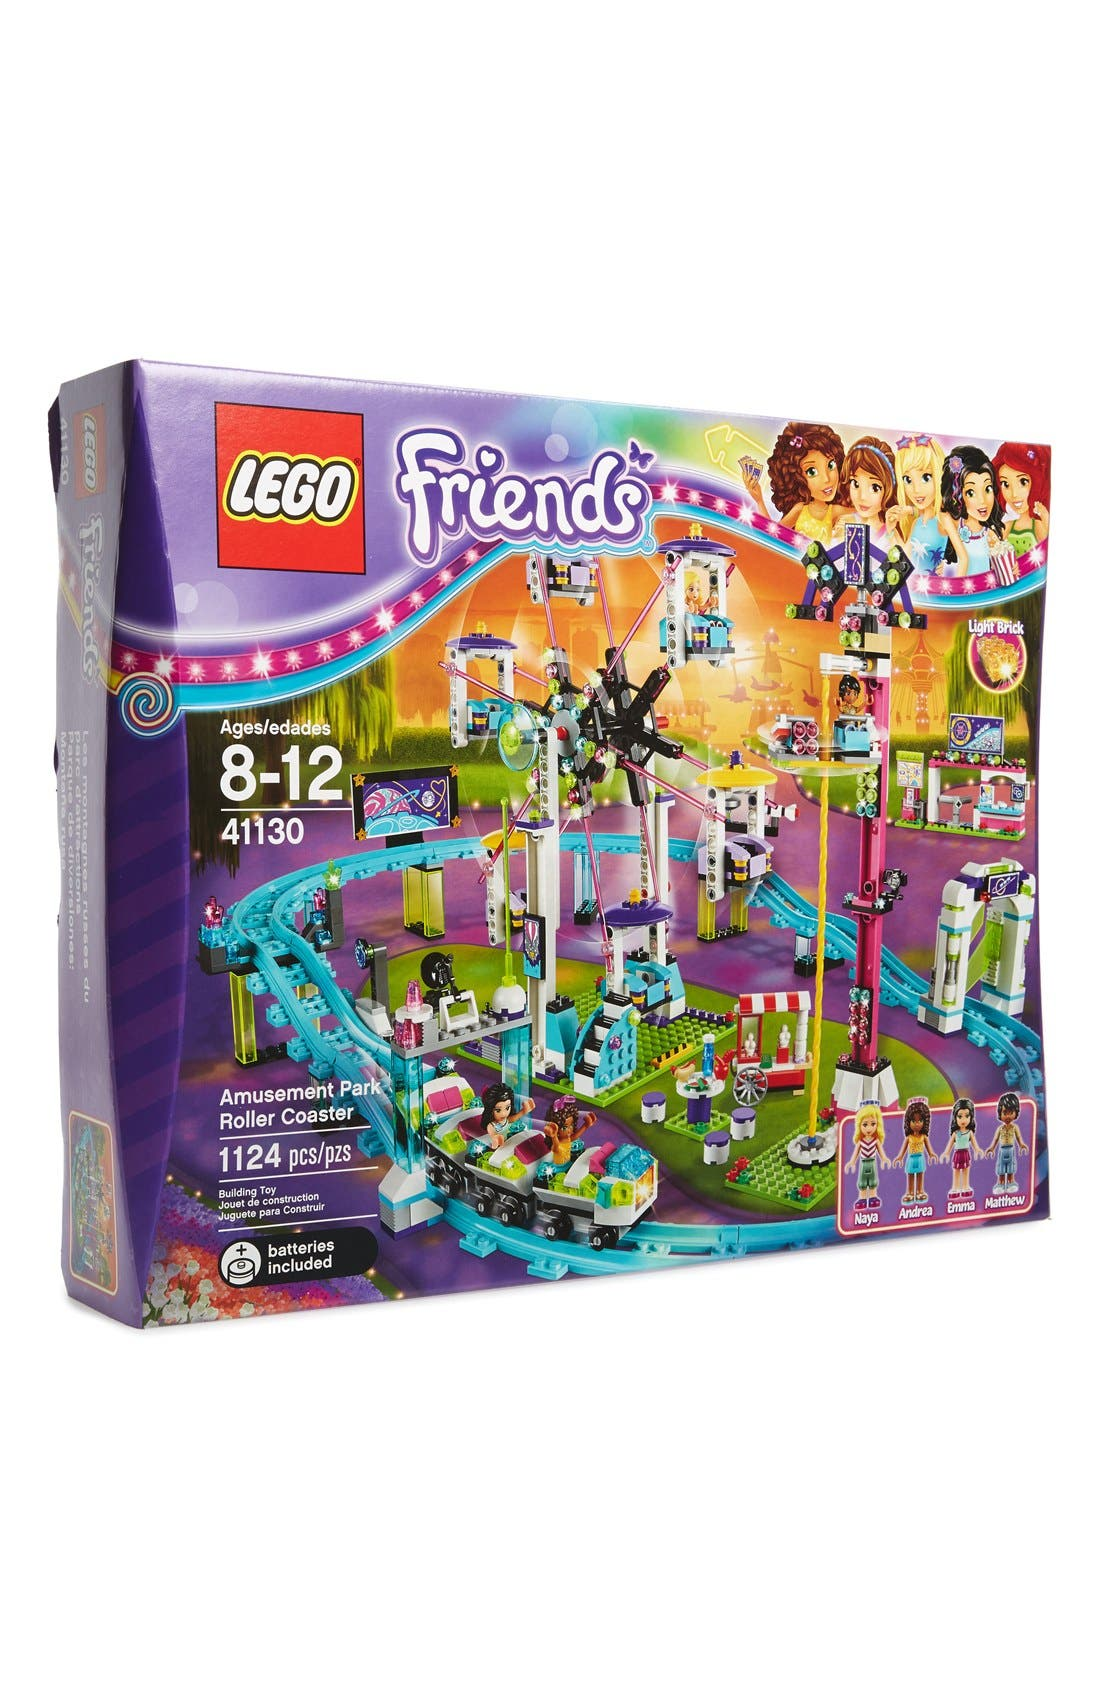 LEGO® Friends Amusement Park Roller Coaster - 41130